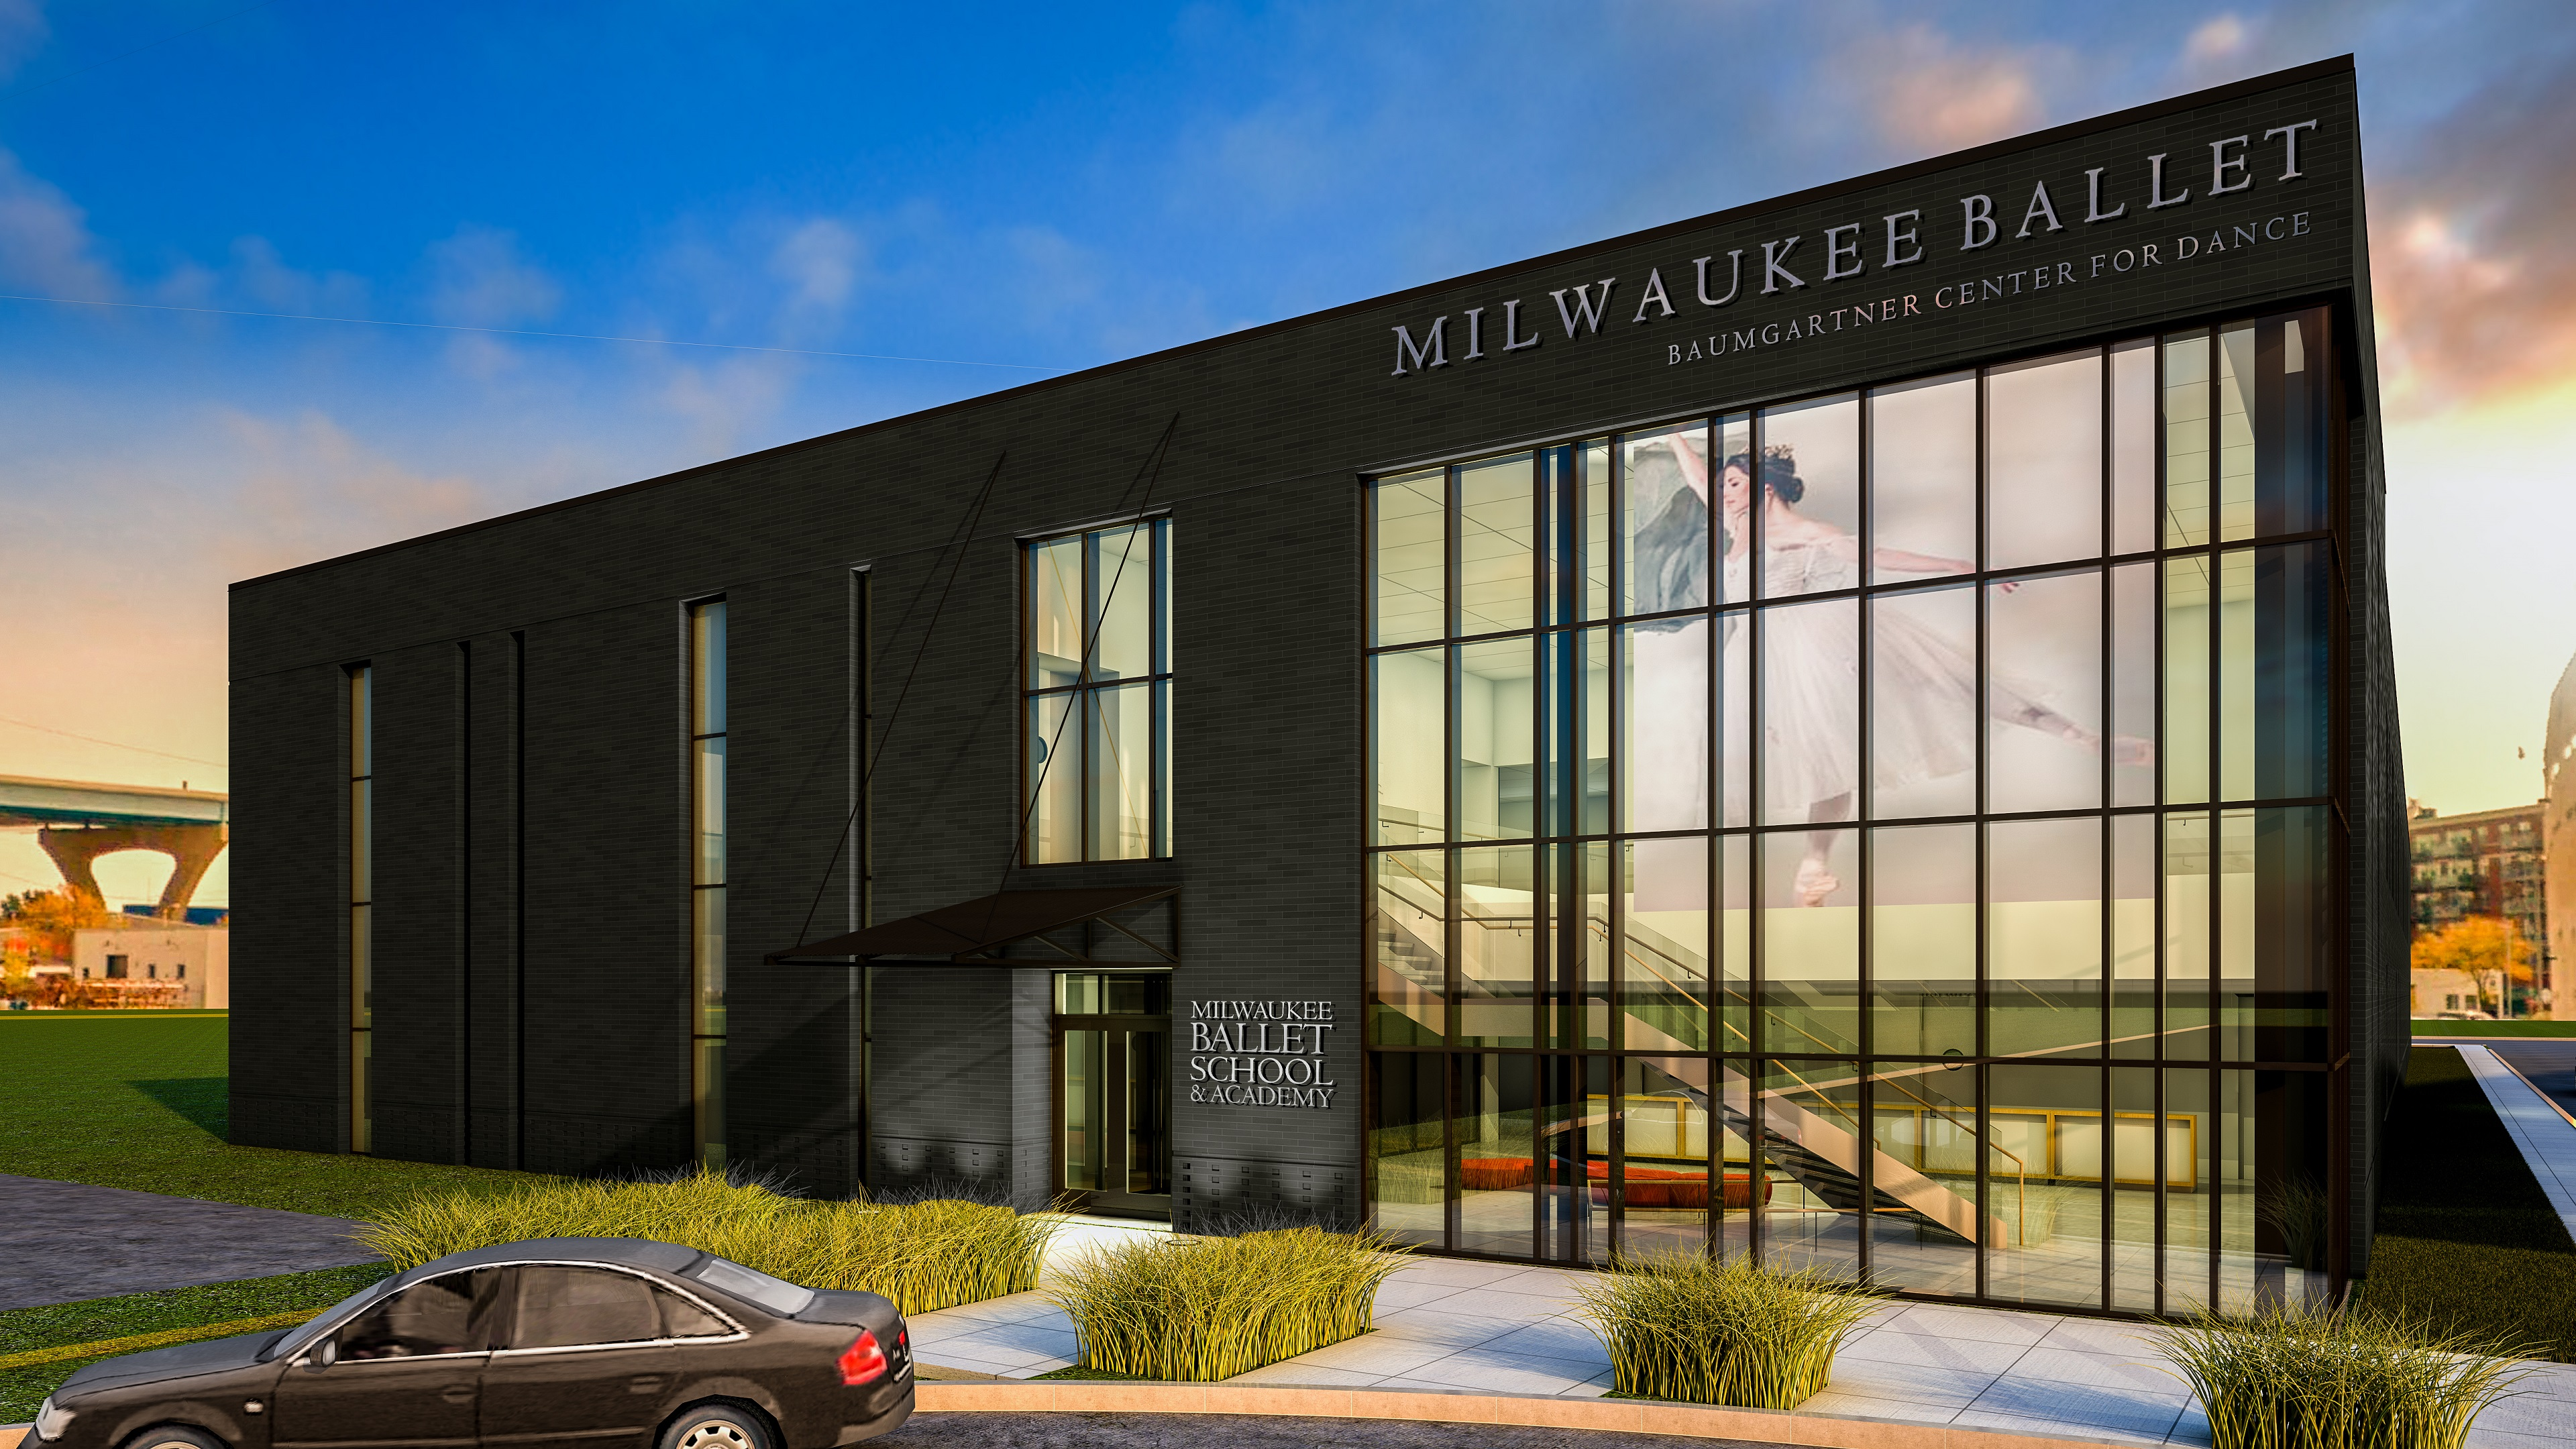 Milwaukee Ballet Breaks Ground on the Baumgartner Center for Dance